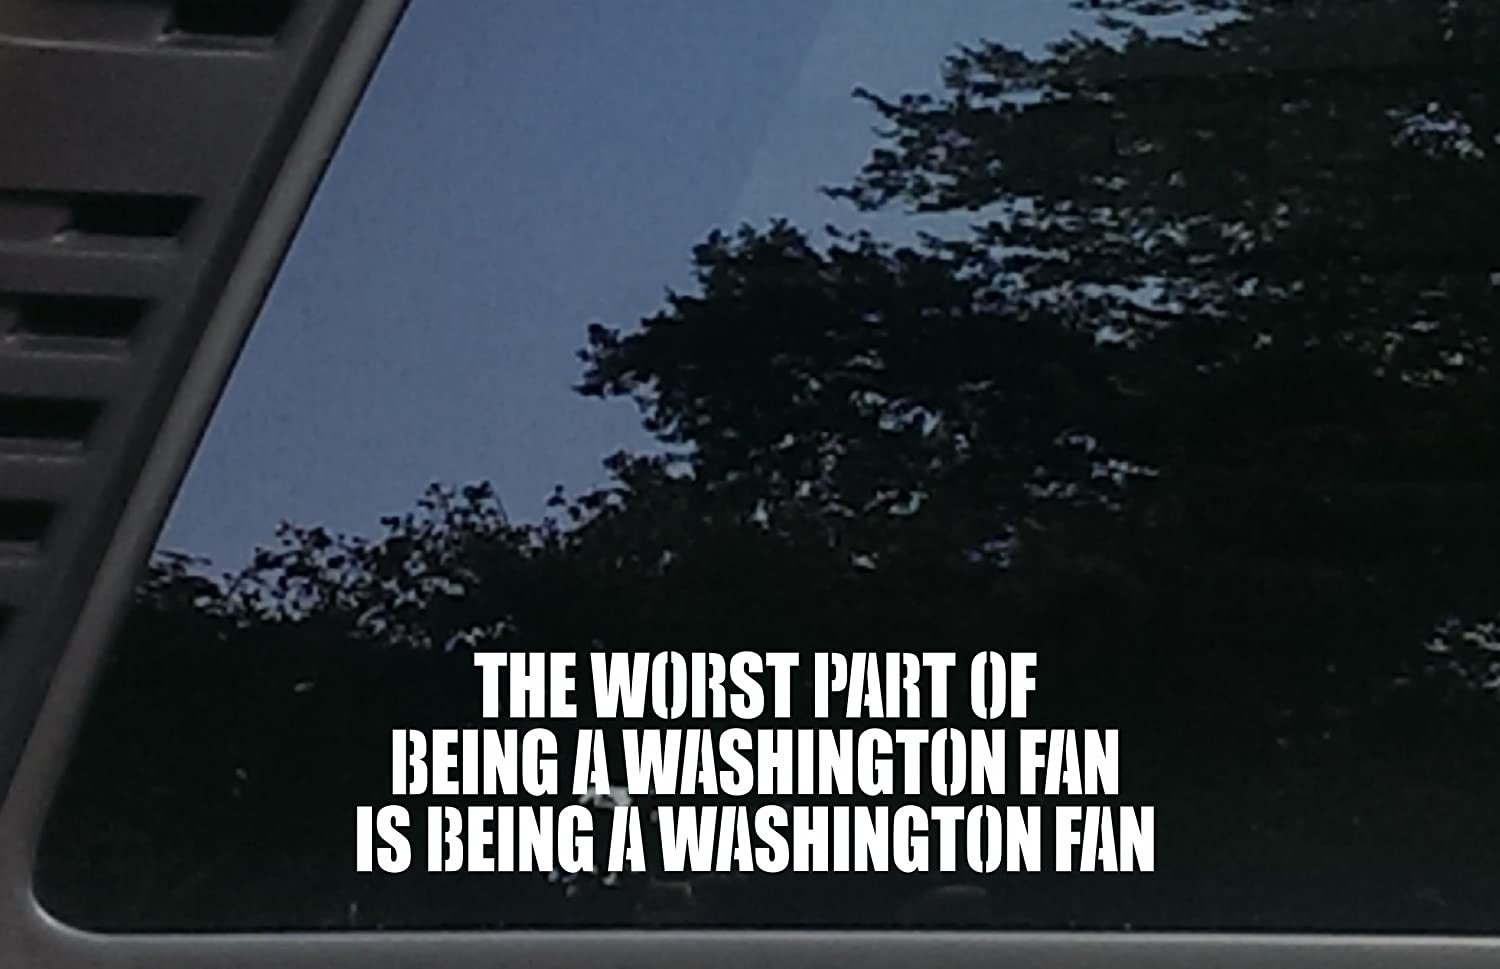 """High Viz Inc The Worst Part of Being a Washington Fan is Being a Washington Fan - 9"""" x 2 1/2"""" die Cut Vinyl Decal for Cars, Trucks, Windows, Boats, Tool Boxes, laptops, etc"""